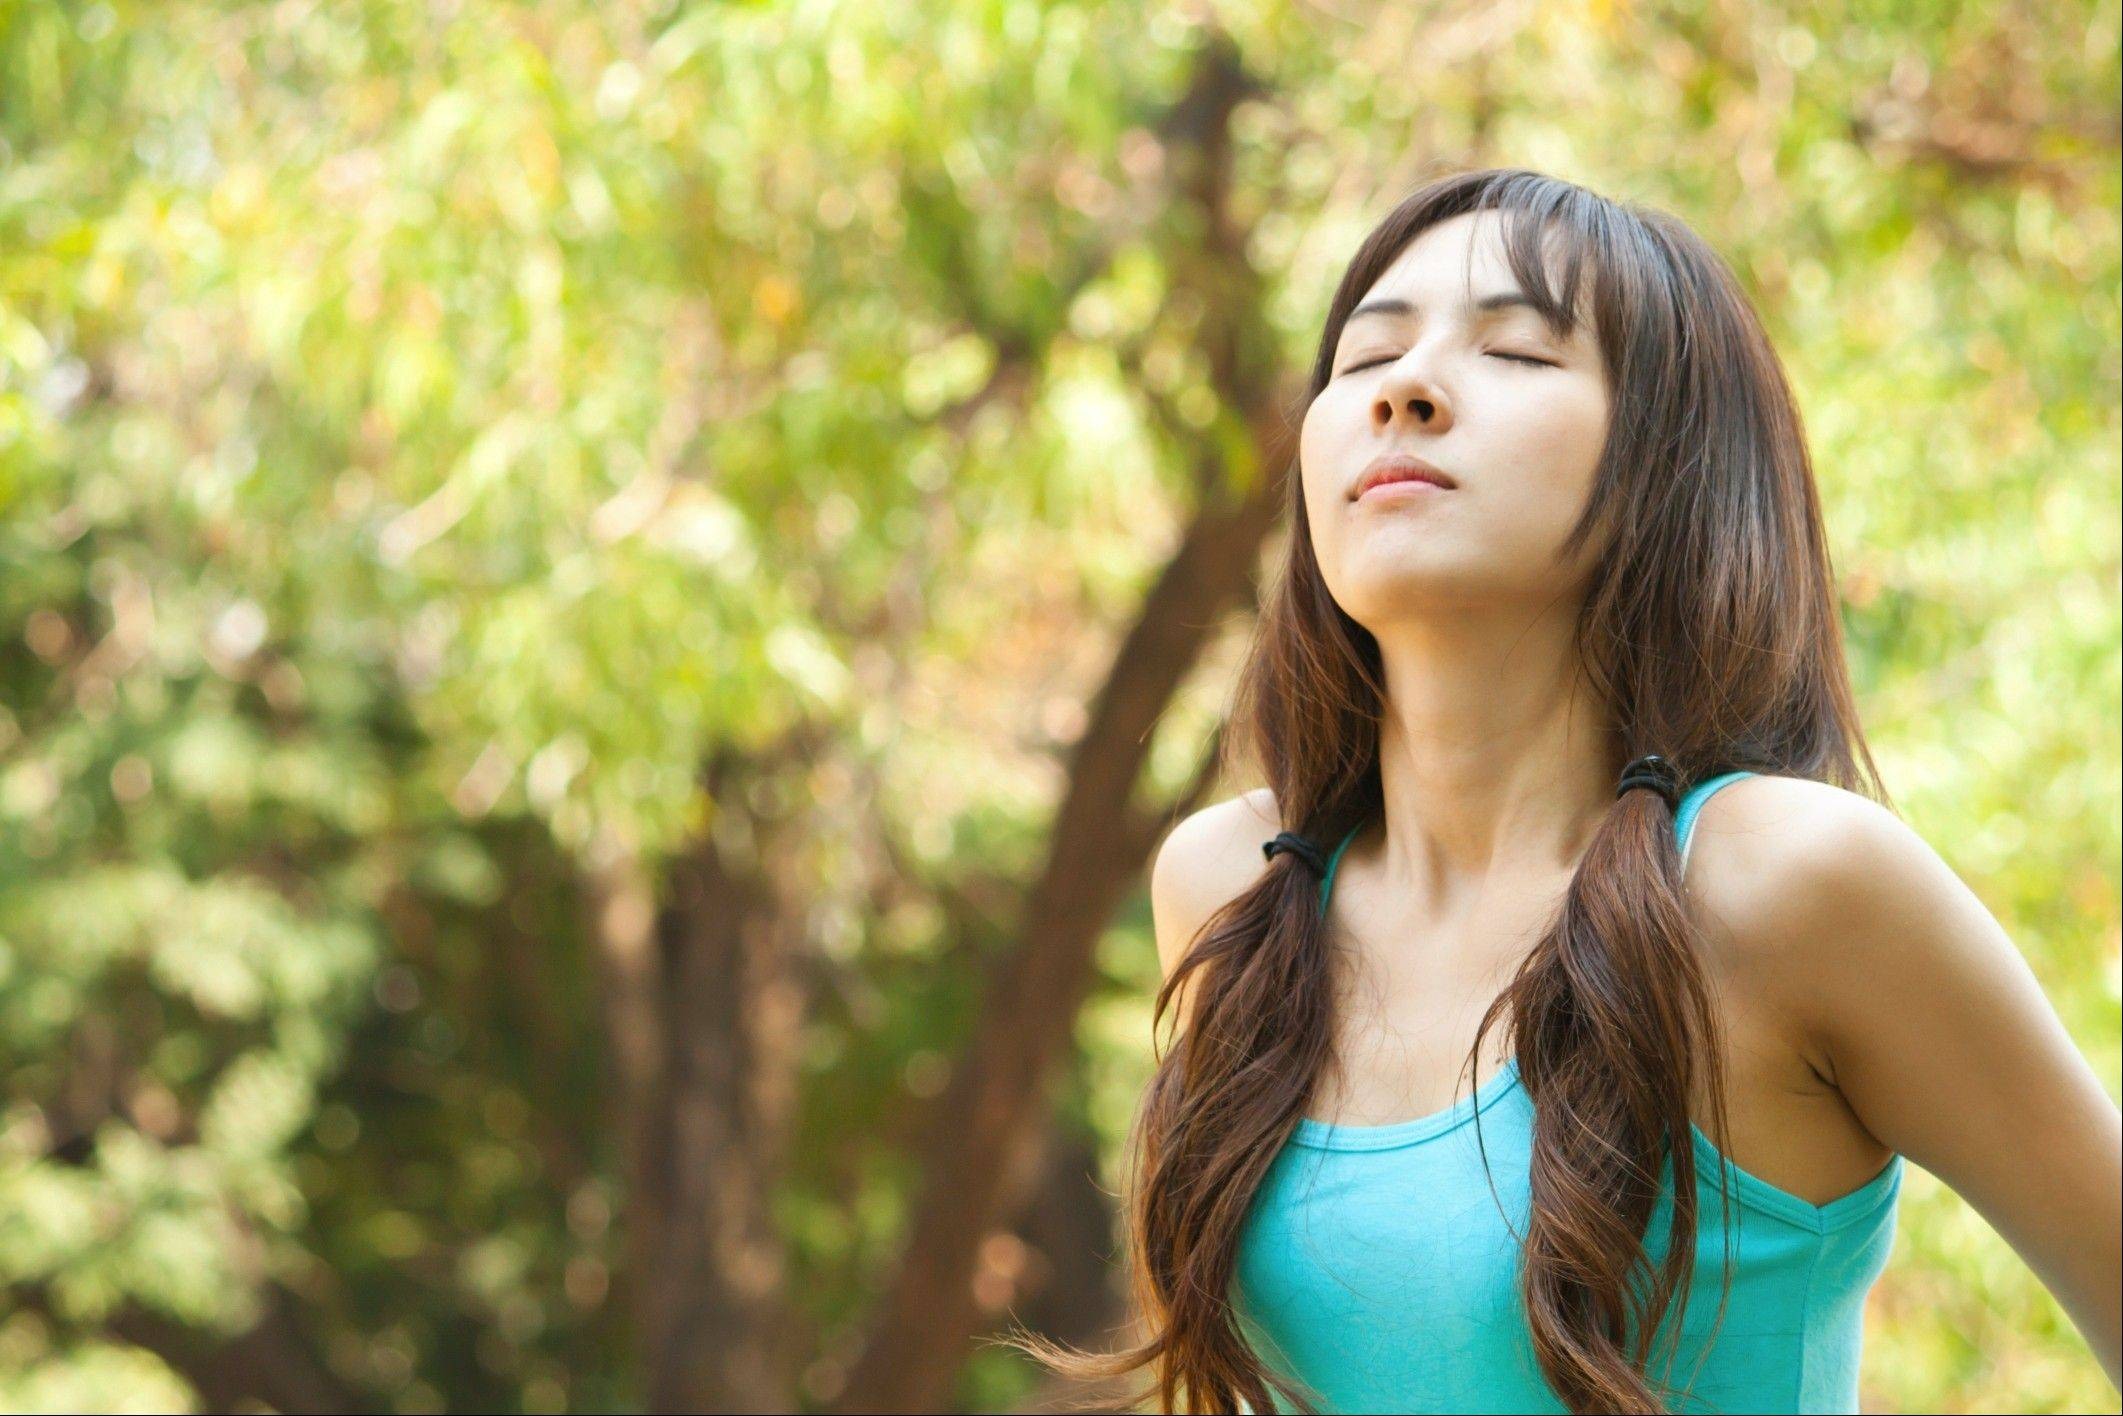 Breathing in fresh air can be hampered by lung diseases.